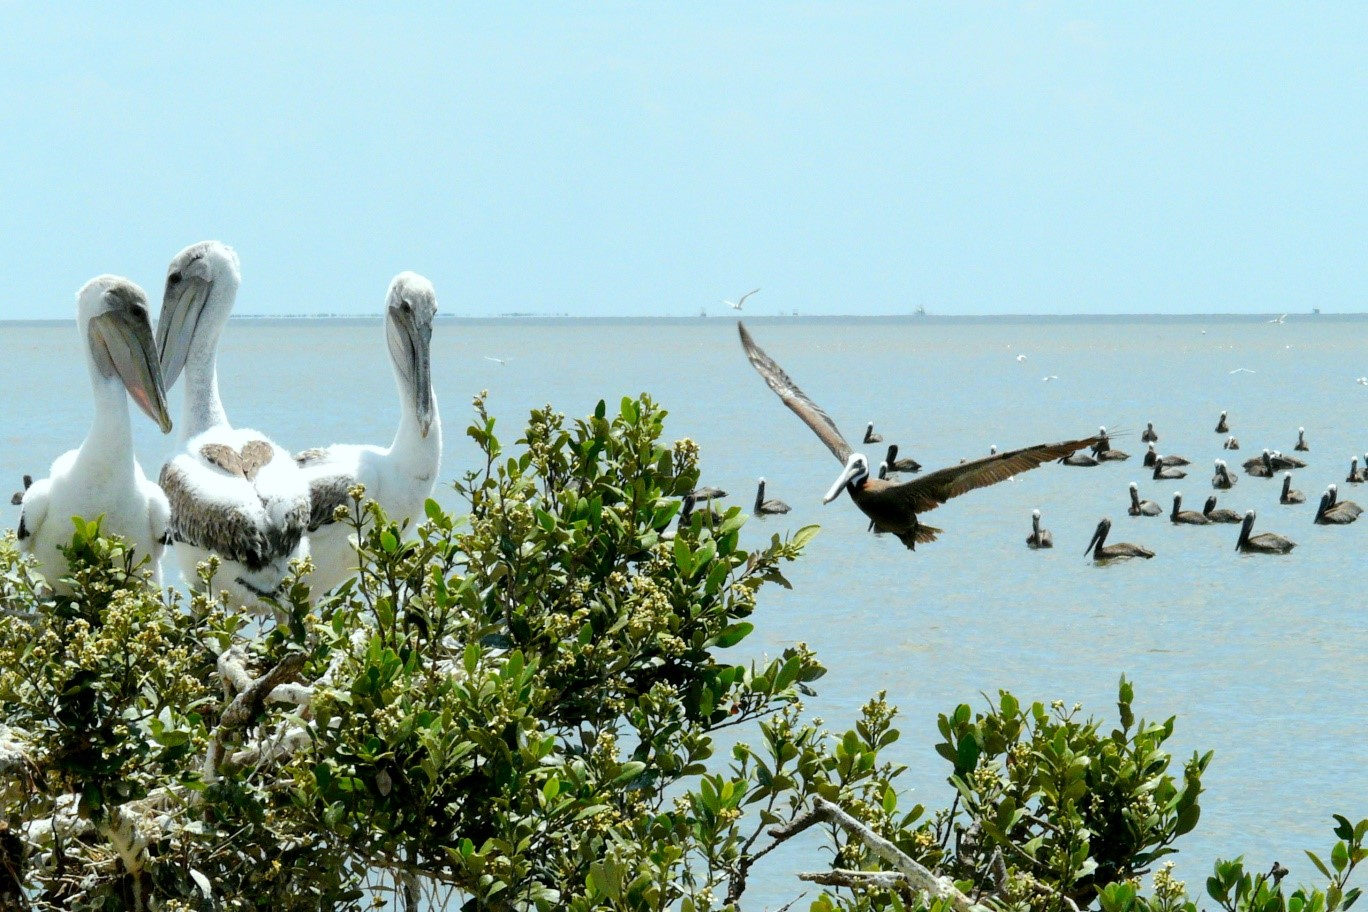 An Eastern brown pelican returns to its nest on Raccoon Island, Louisiana.